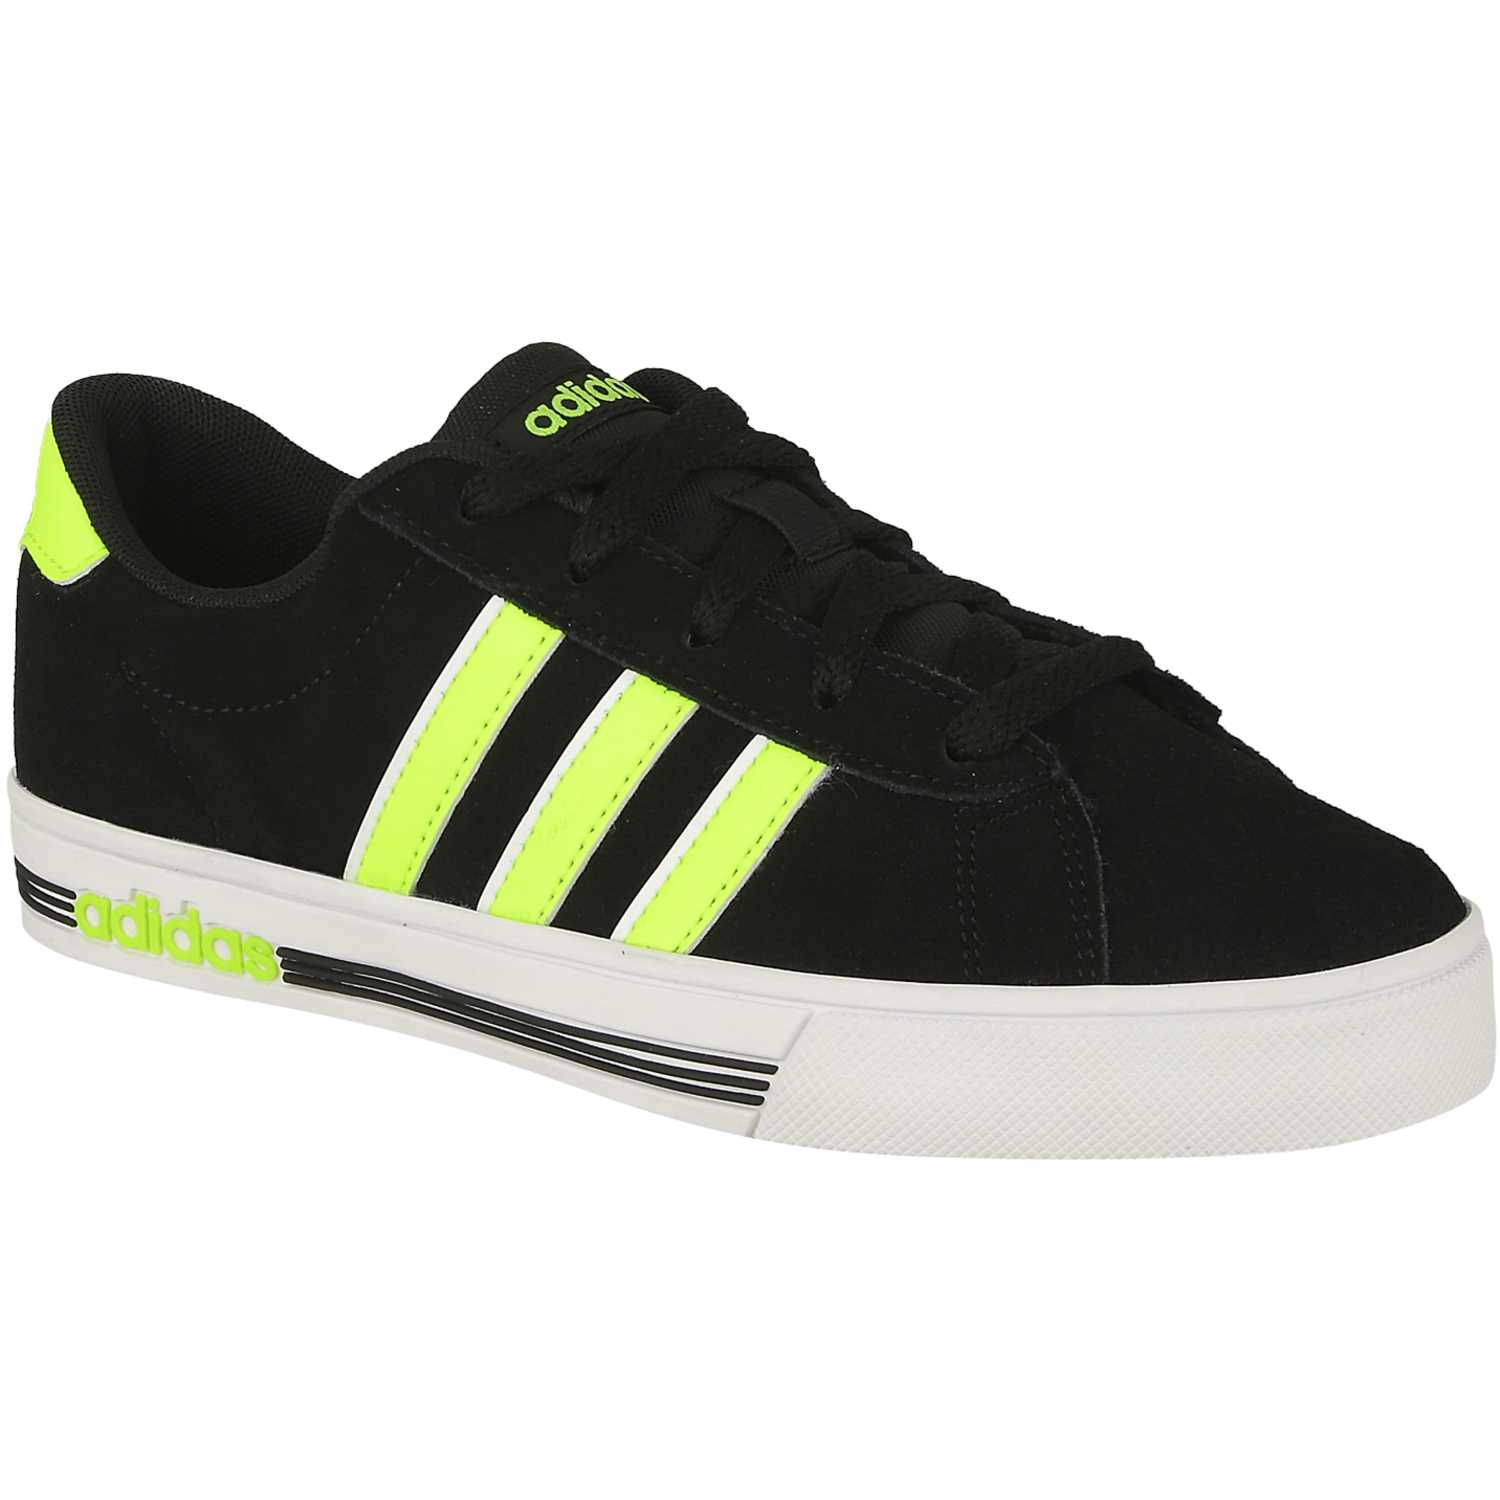 best authentic 70e43 8fc70 Zapatilla de Jovencito adidas NEO negro  amarillo daily team k